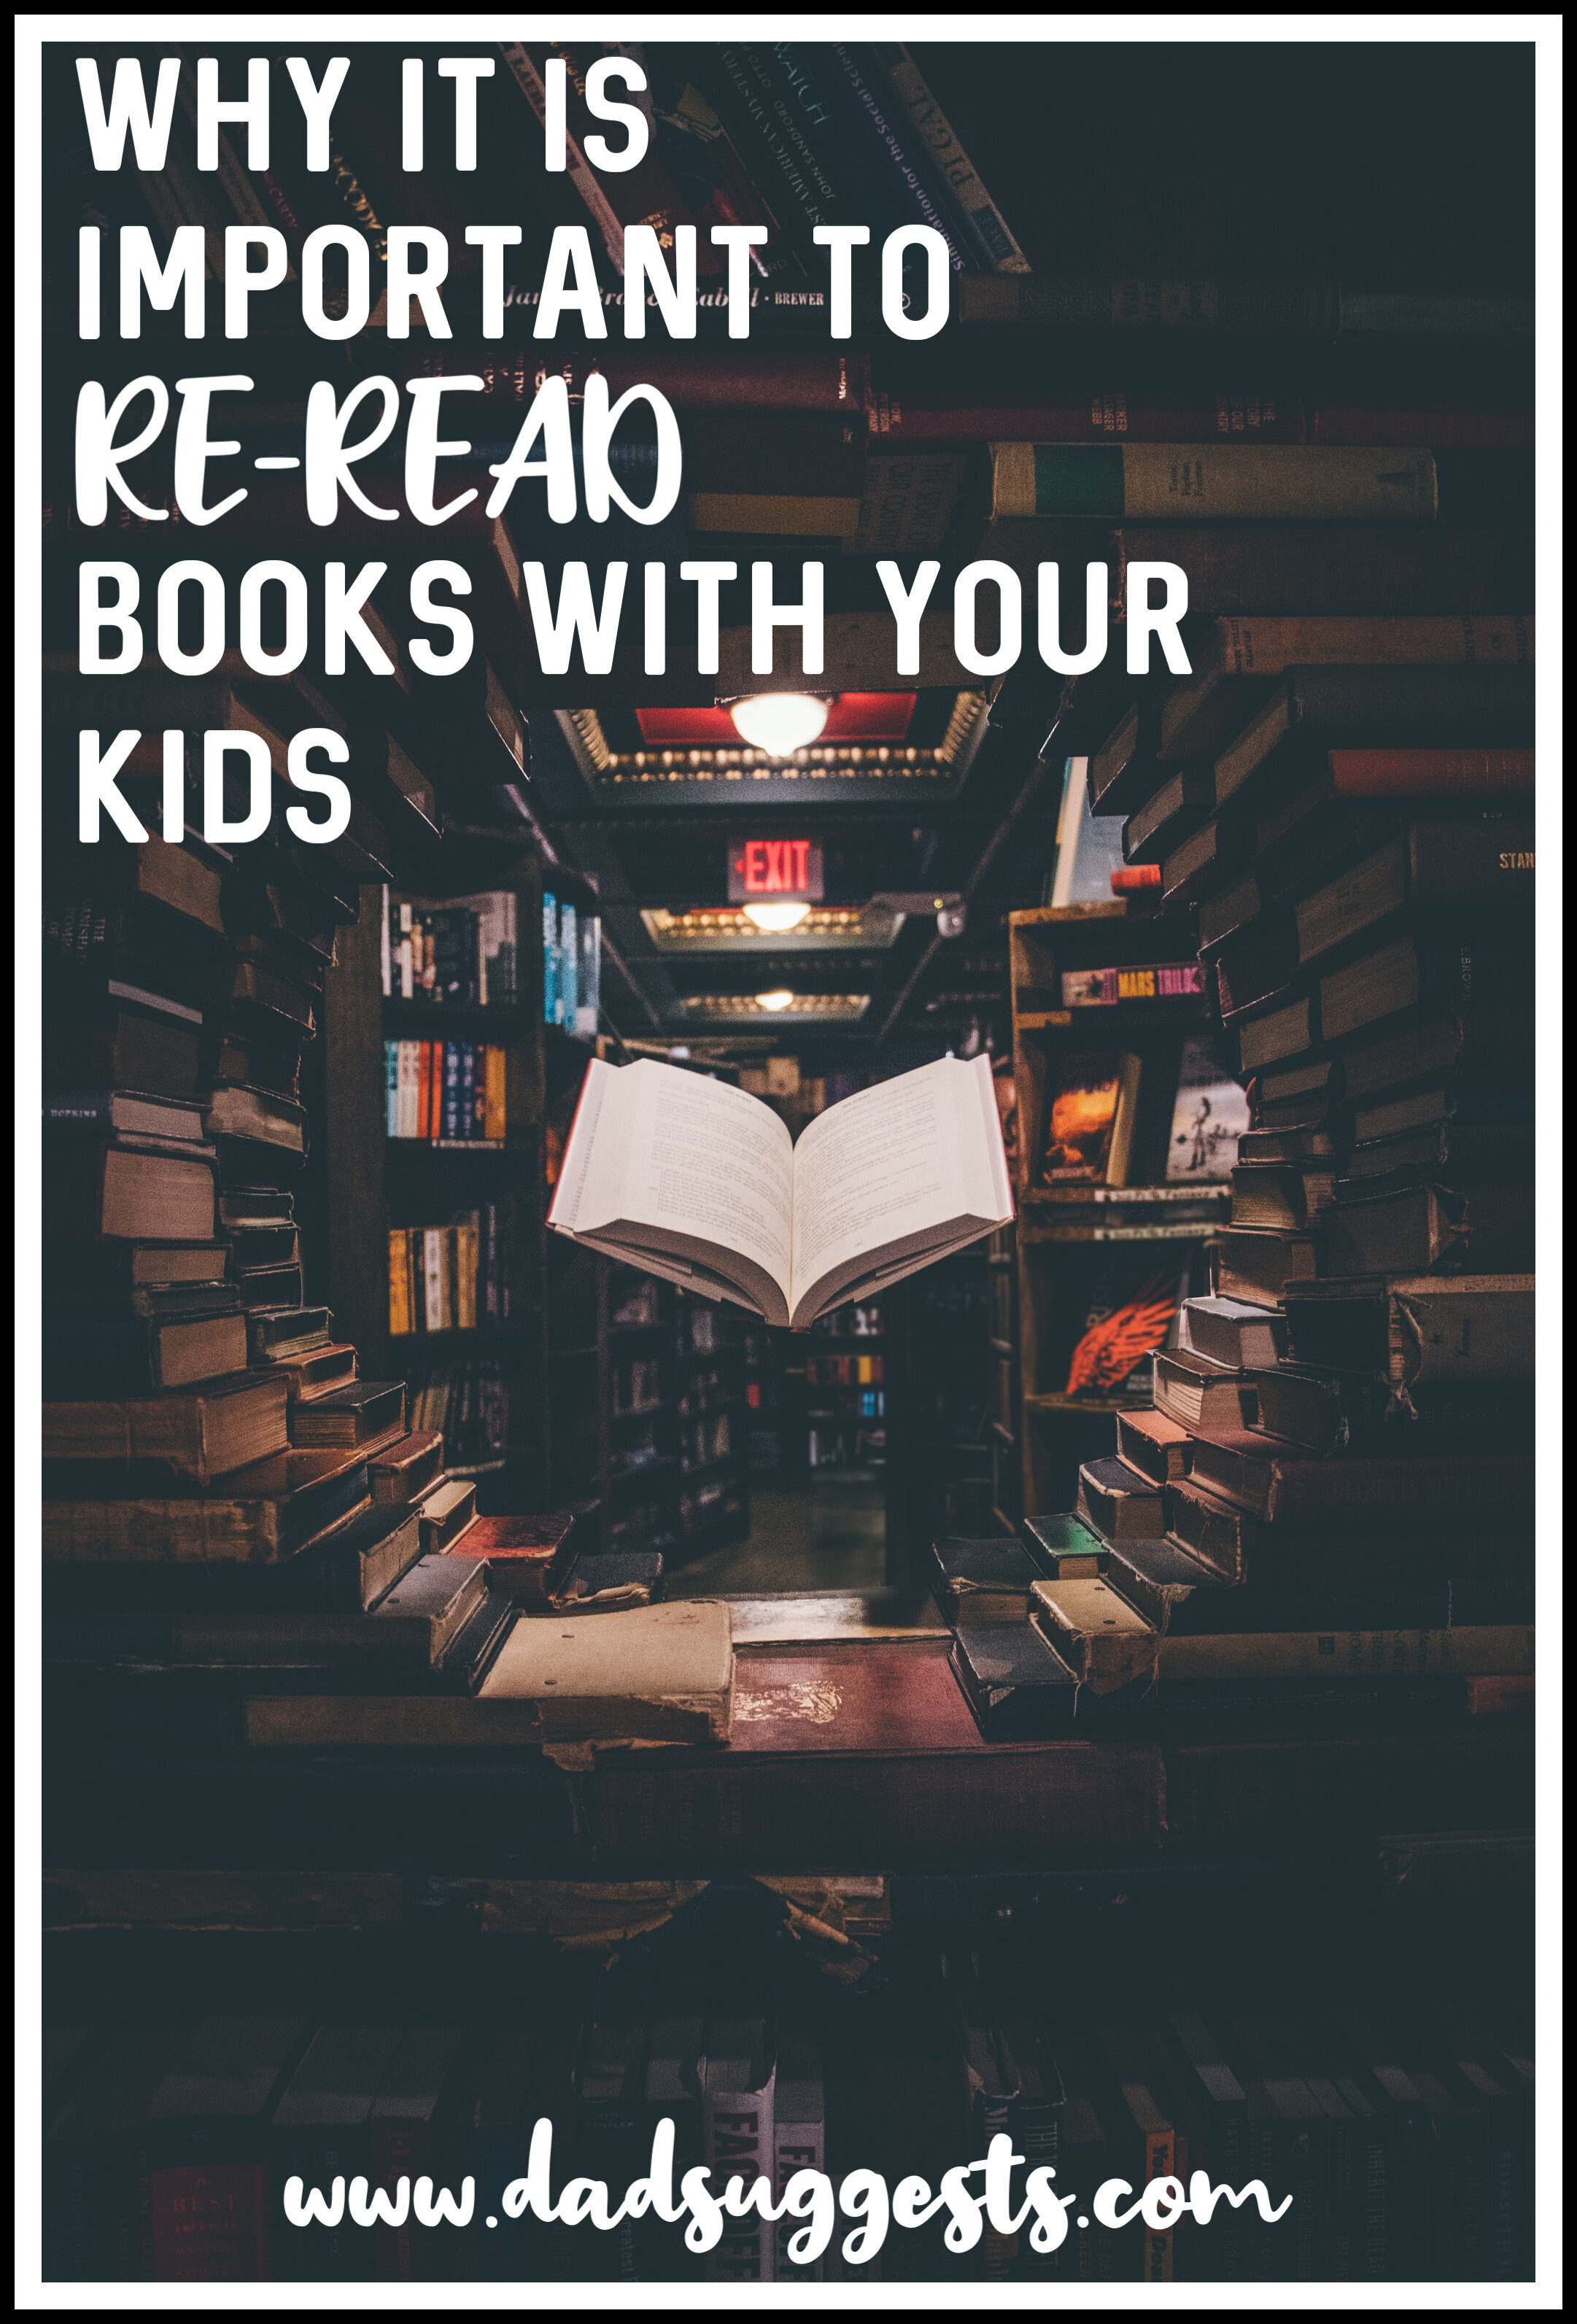 Why it's important to reread books with your kids. Repeated readings have numerous benefits - ranging from academic brain-boosting benefits all the way to important family bonding and creating lasting memories. Read those books again! #readingskills #picturebooks #raisingreaders #kidsbooks #teachingreading #learningtoread #parenting #raisingkids #dadsuggests